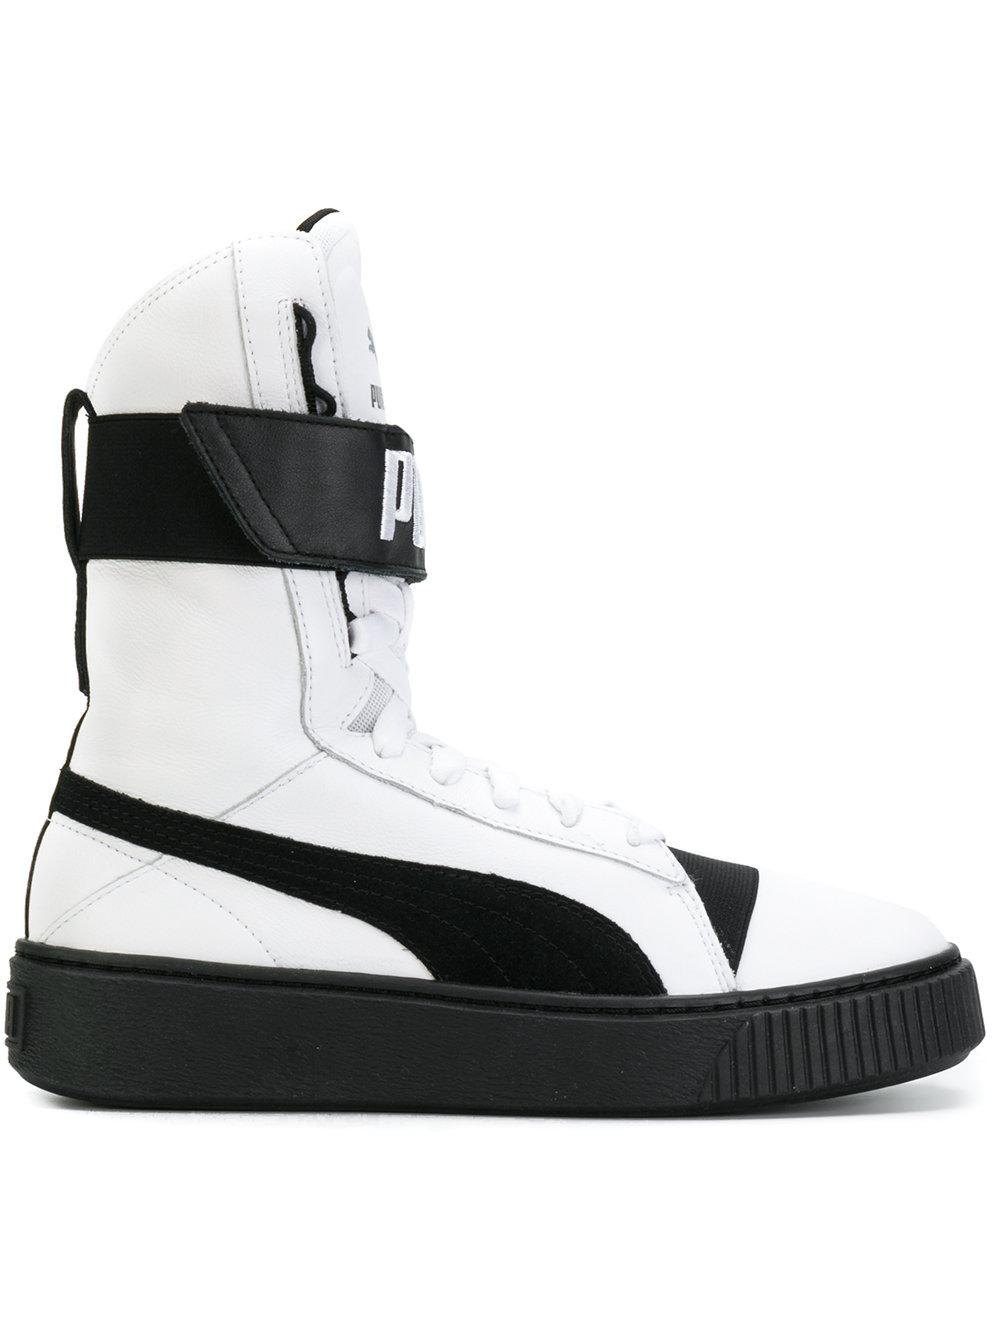 PUMA Leather Platform Boots in White